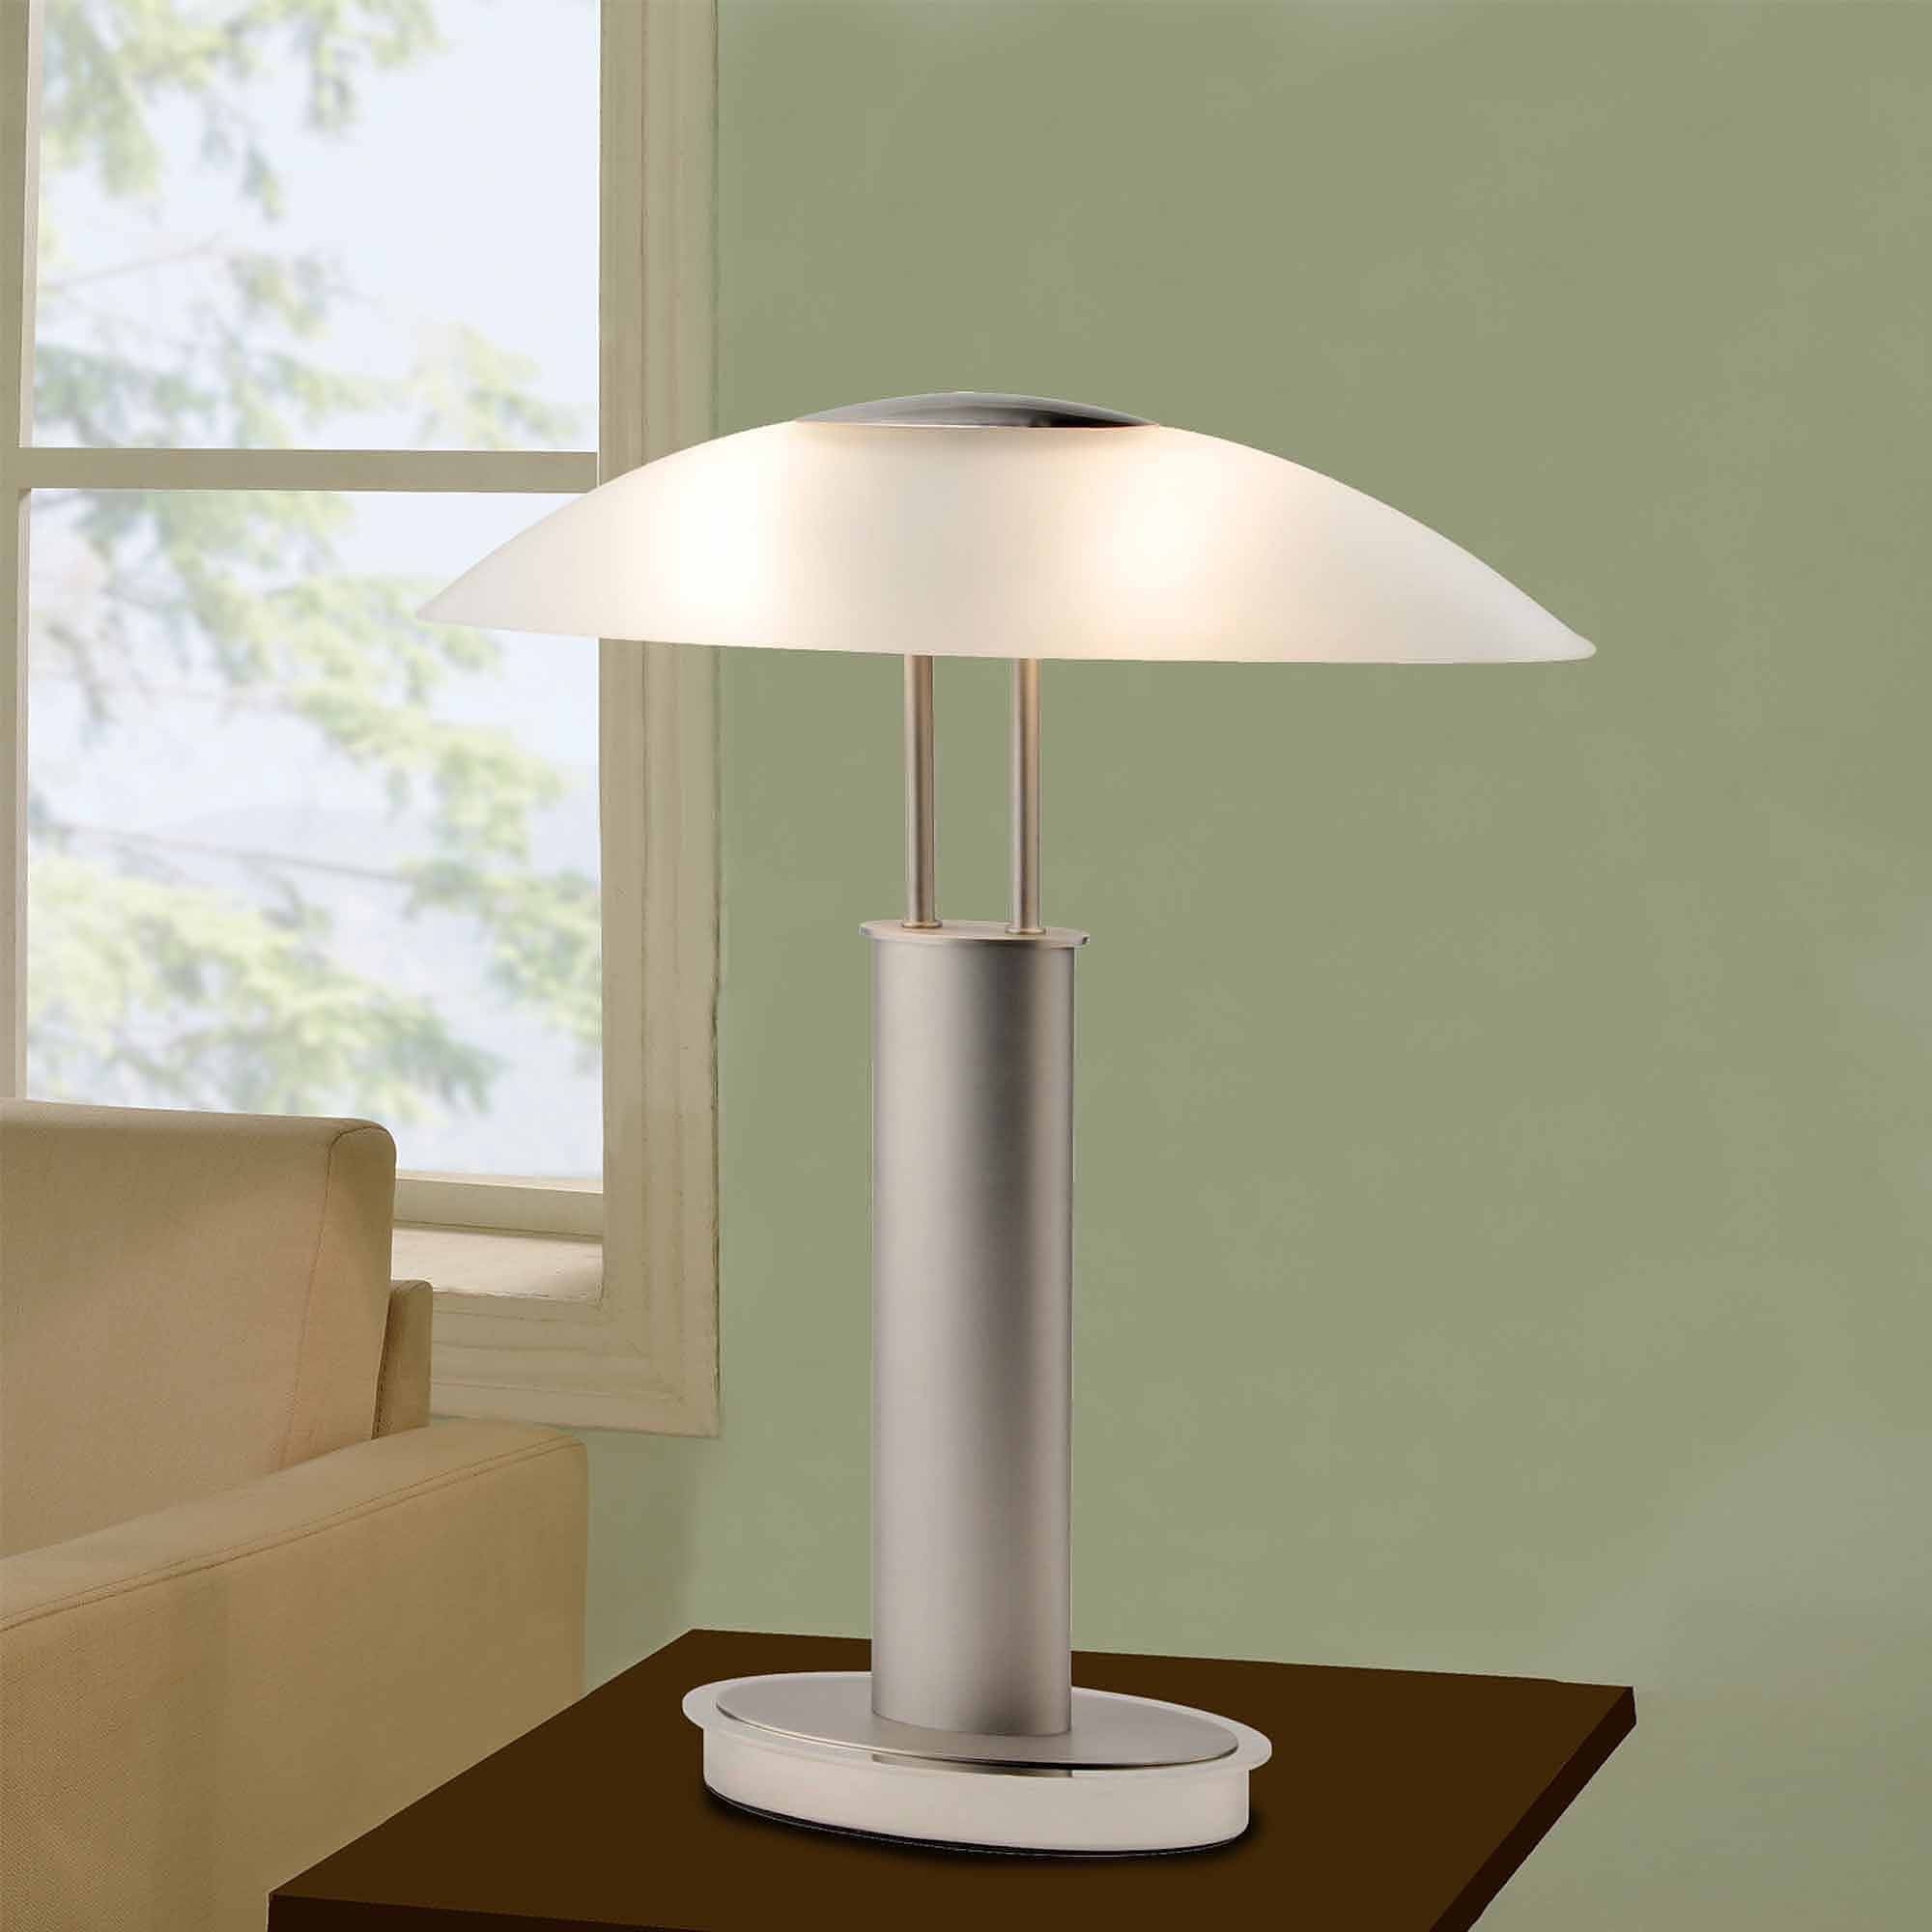 Artiva Usa 18 5 Avalon 2 Light Satin Nickel Touch Desk Lamp With Oval Frosted Glass Shade Com